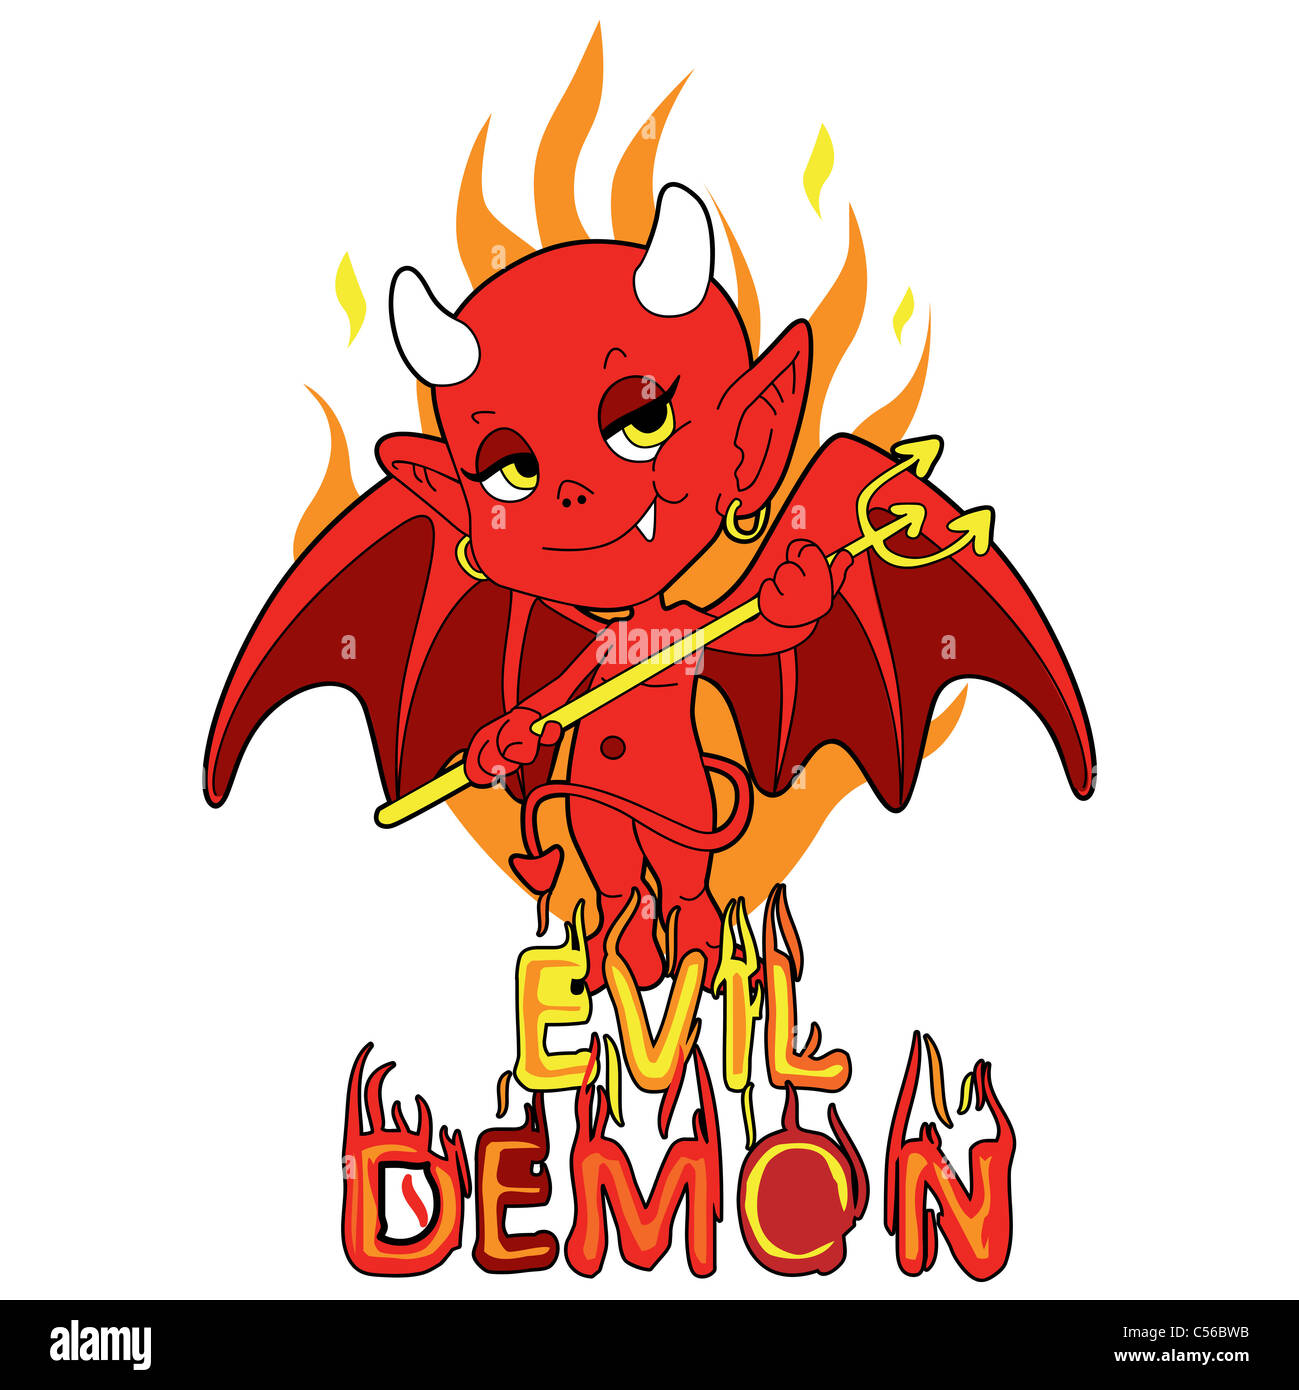 Red evil demon boy holding trident over infernal flames smiling mischievously - Stock Image